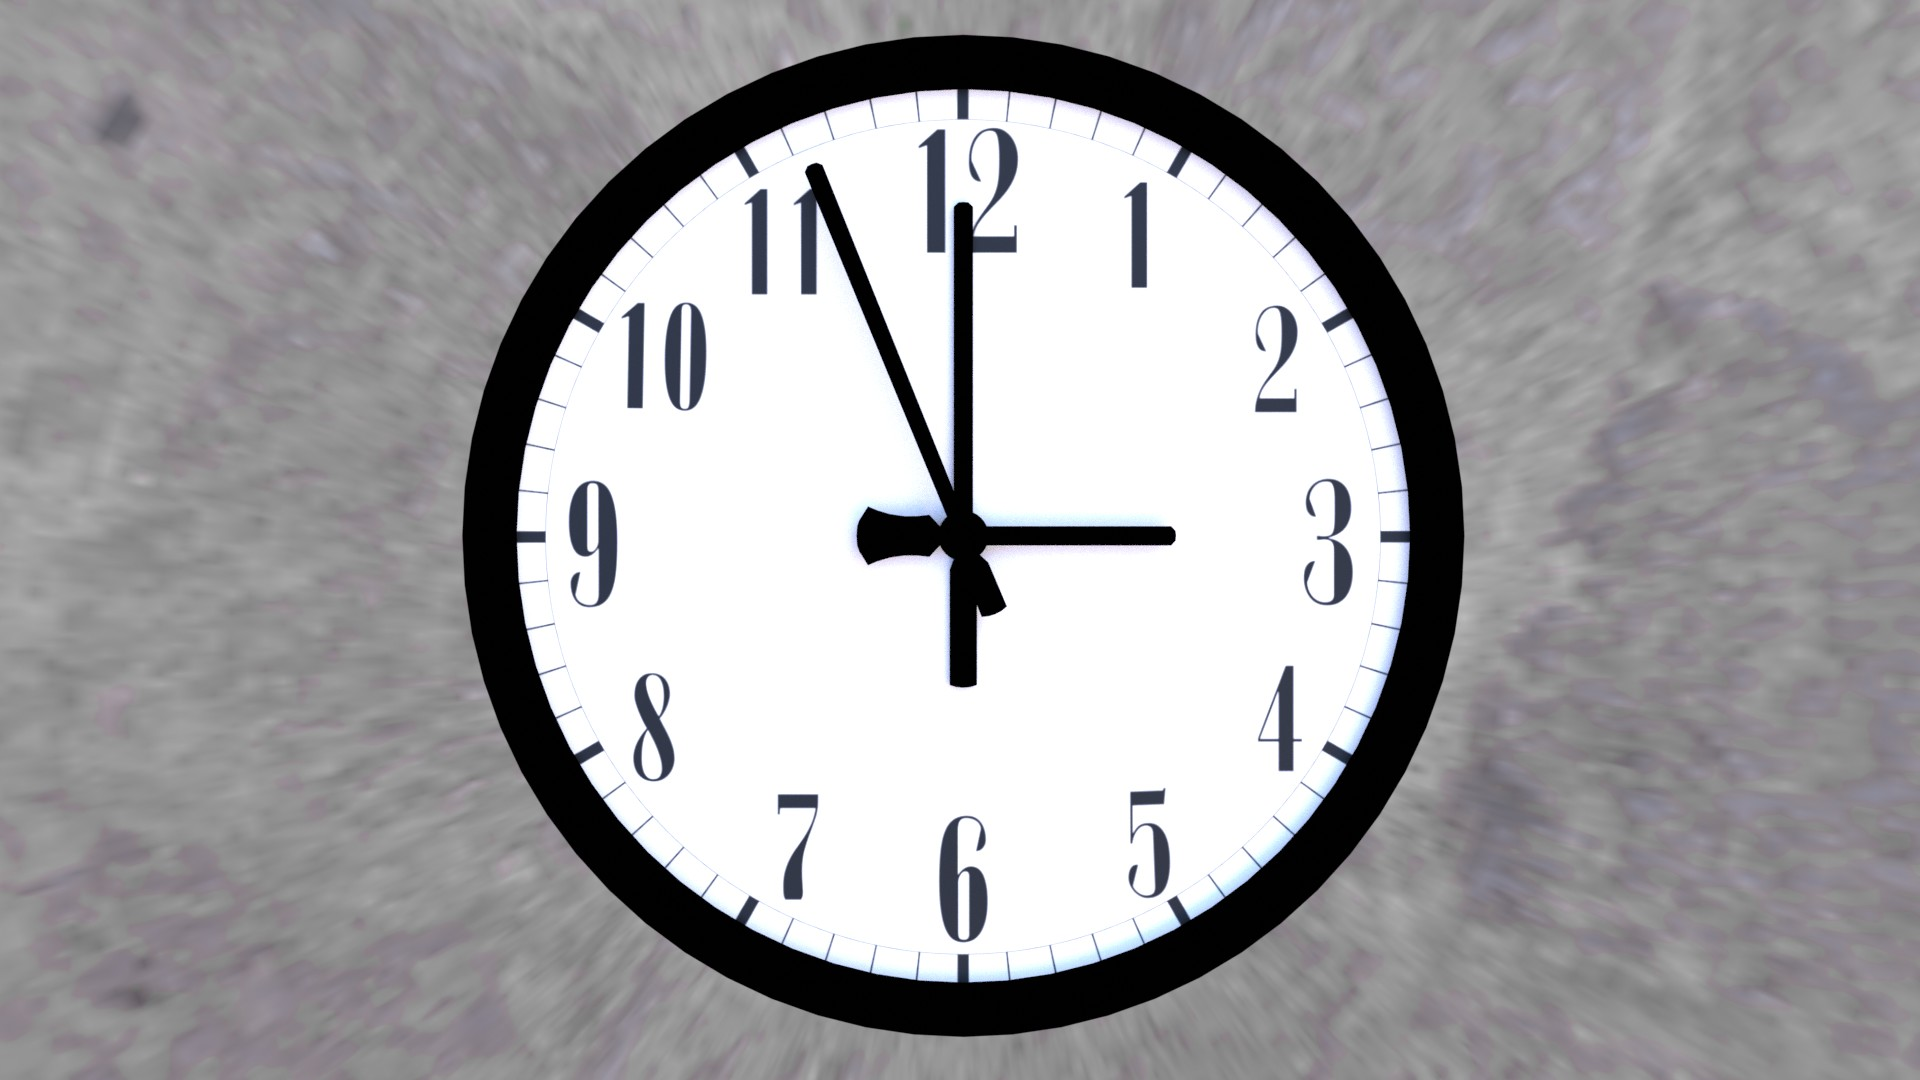 Basic Analogue Clock (With Hands) preview image 1